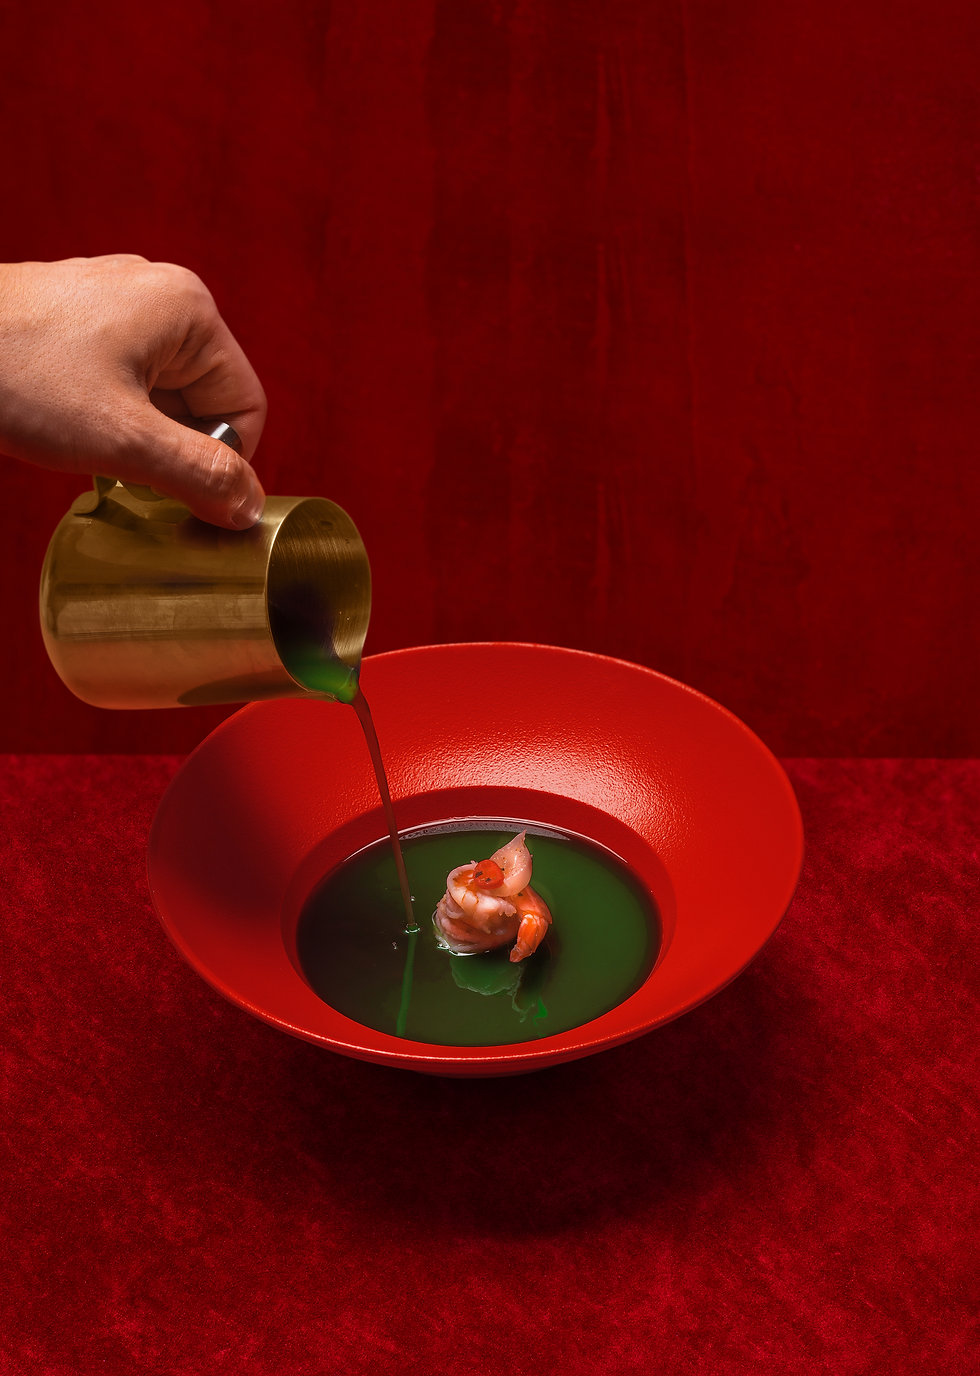 sauce being poured into a bowl